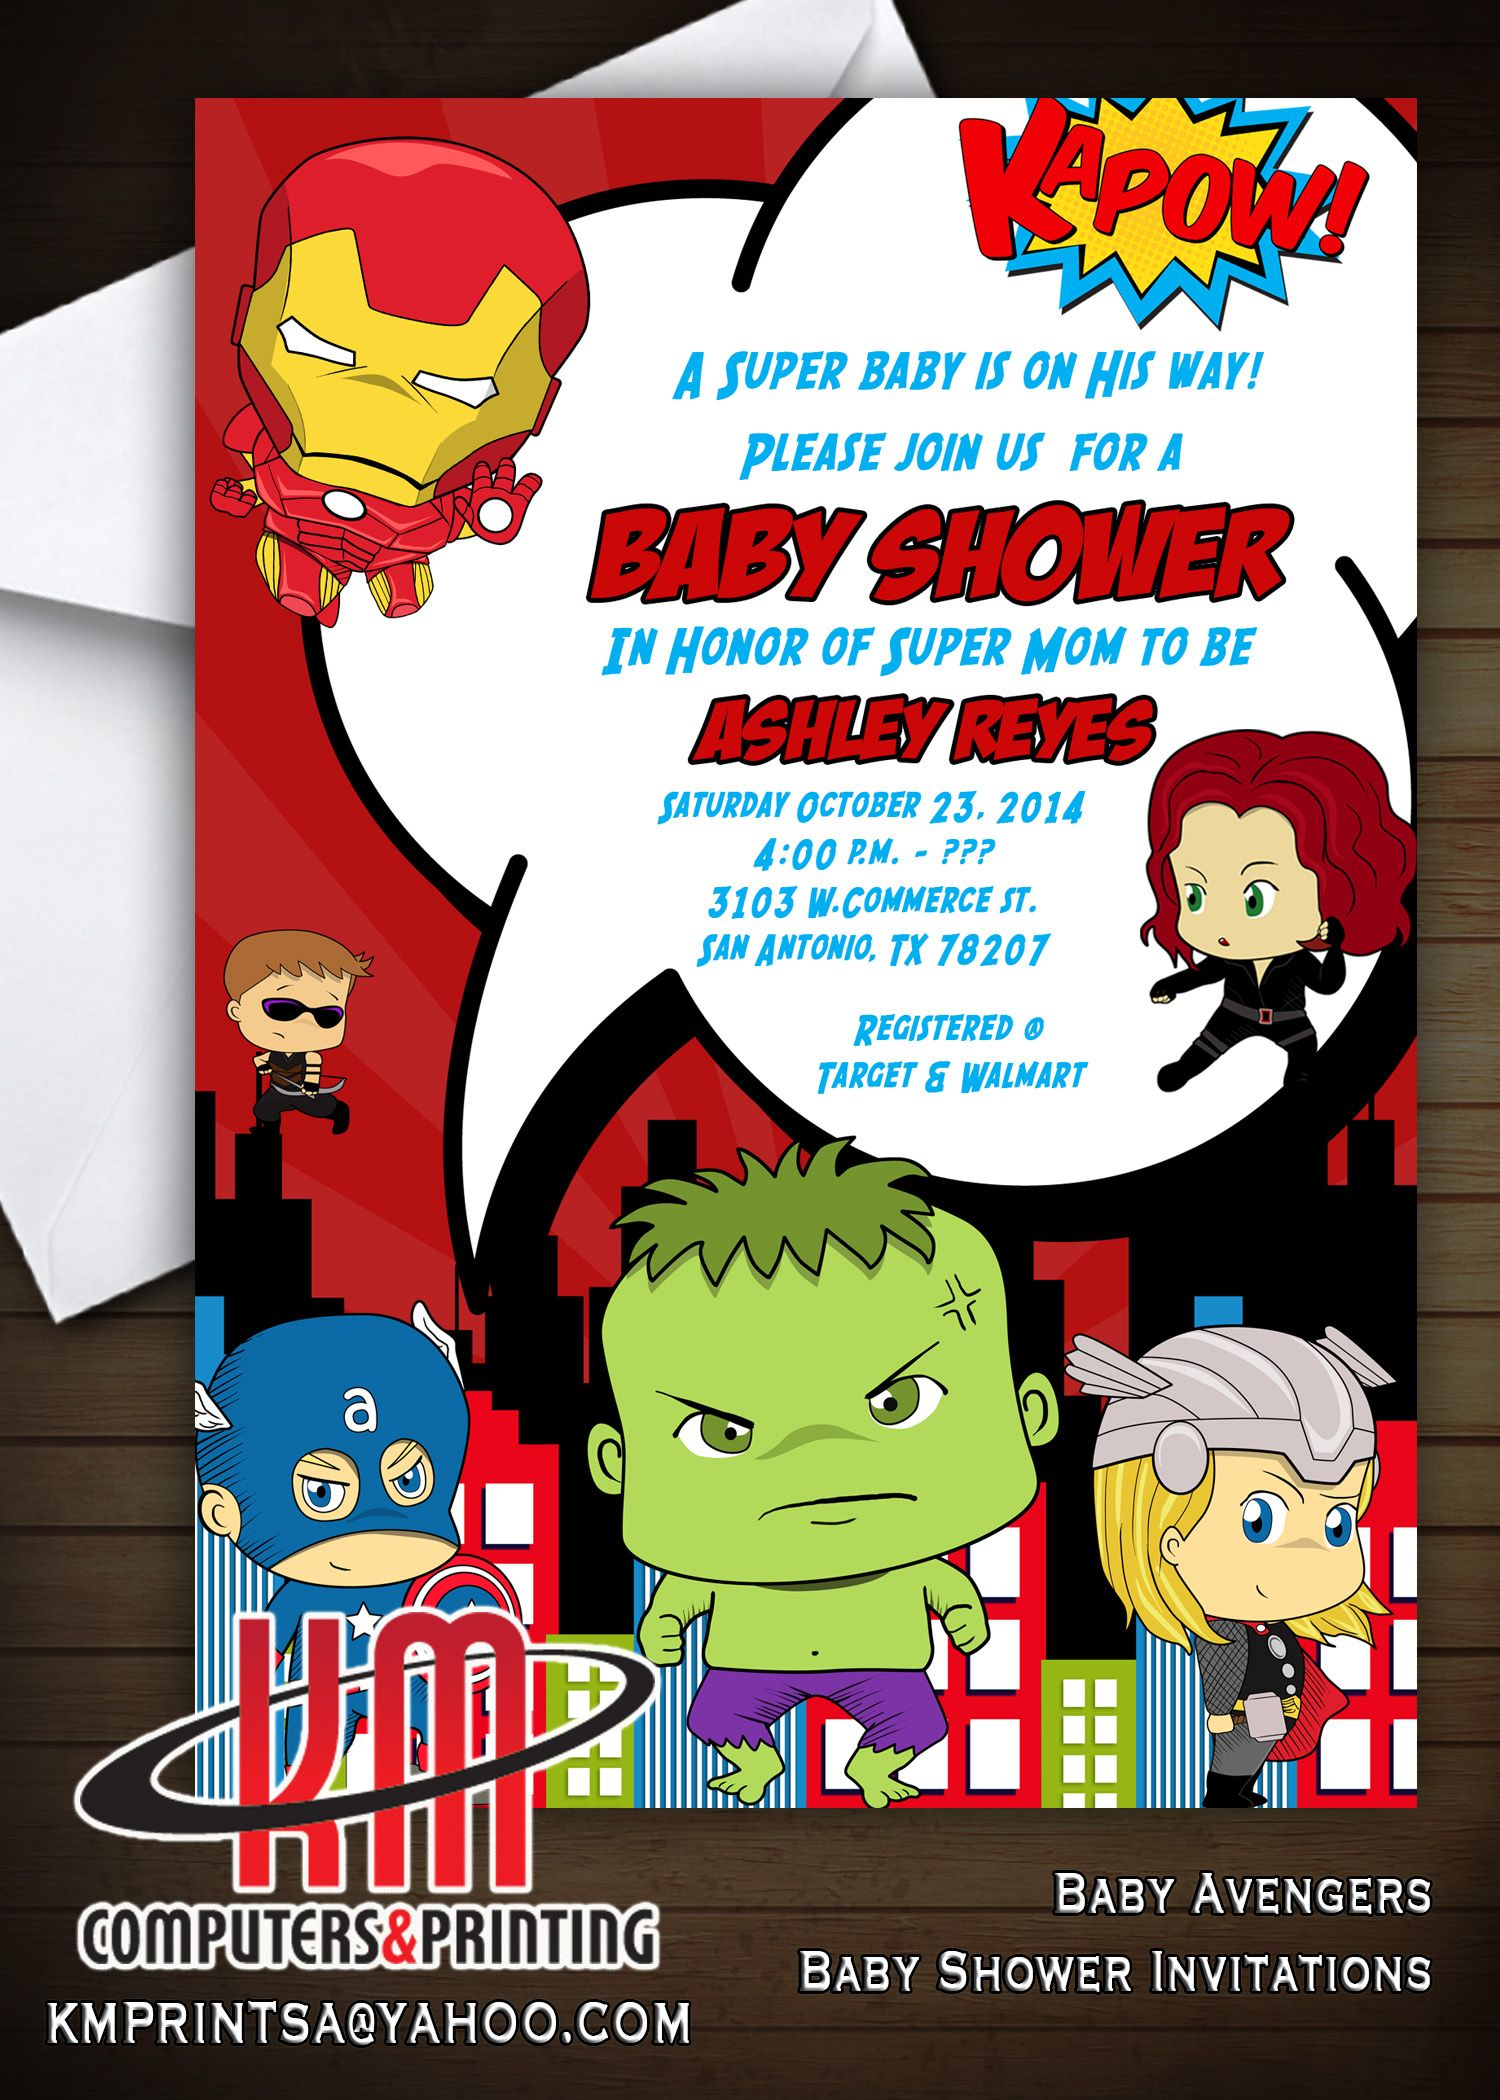 Baby Avengers, Superhero Baby Shower, Custom Invitations, 3Rd Birthday, Birthday